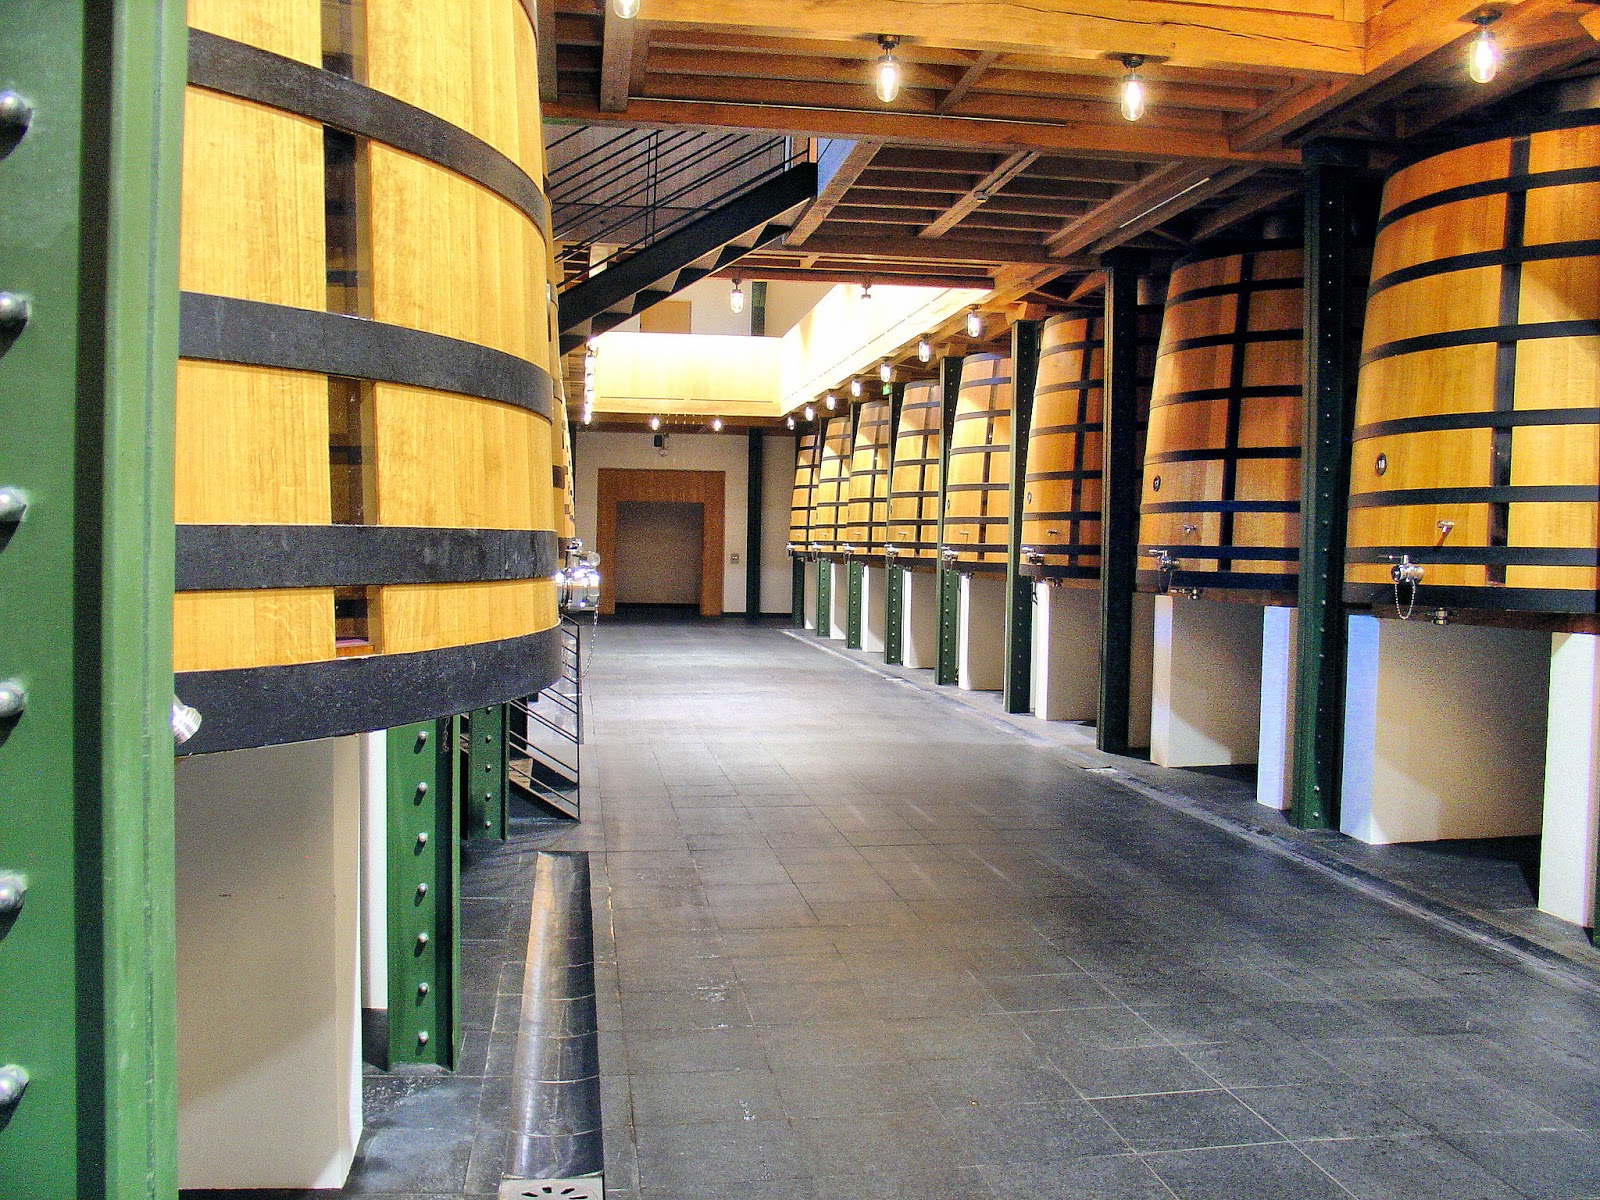 Huge oak barrels are where the grapes begin their transformation into a the Premier Grand Cru Classé Chateau Mouton-Rothschild.